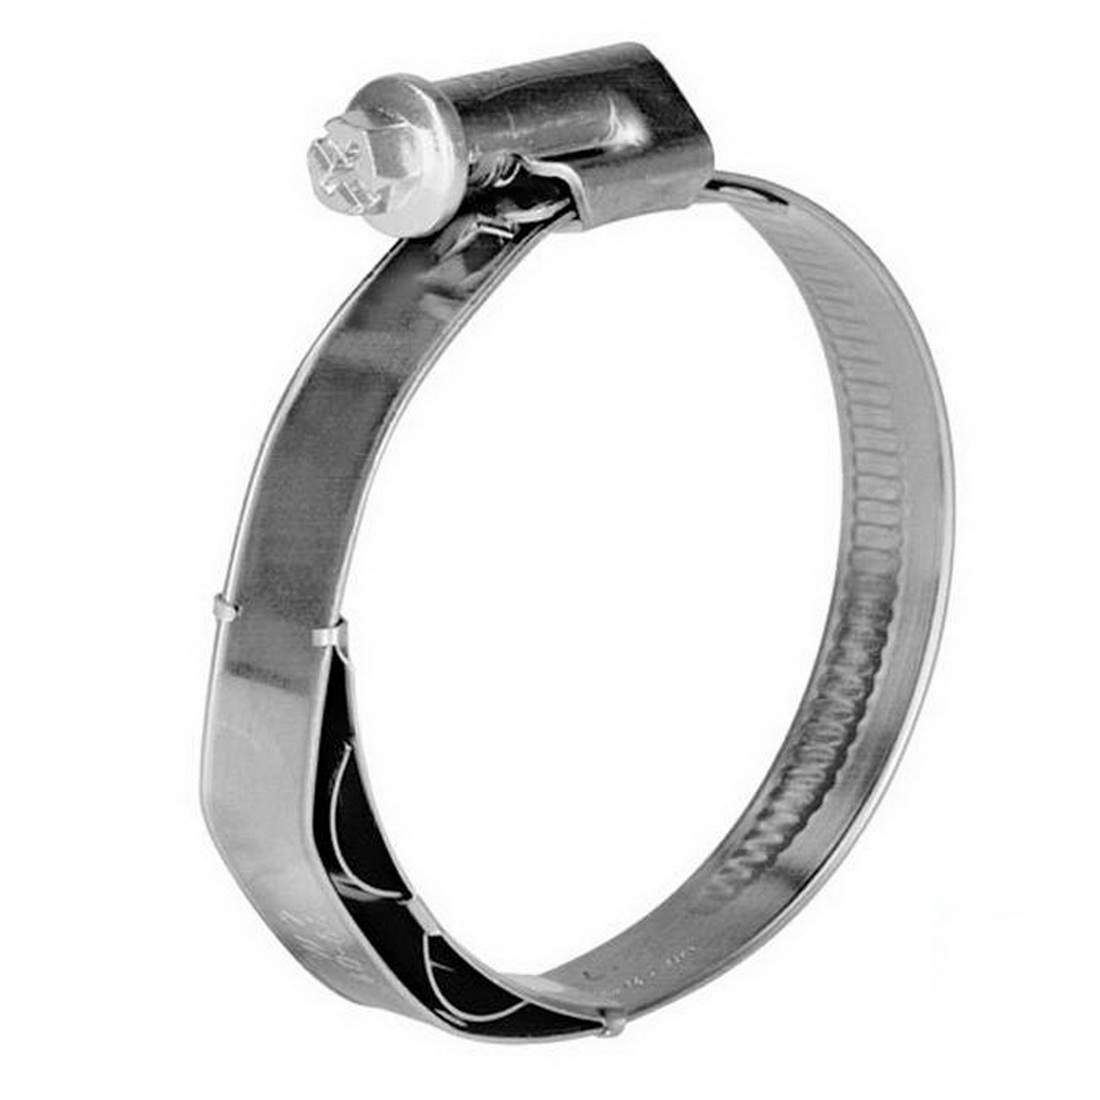 TORRO Worm Drive Hose Clamp 40-60mm 12mm Band W3 340 Stainless Steel P1 WDHC406012W3